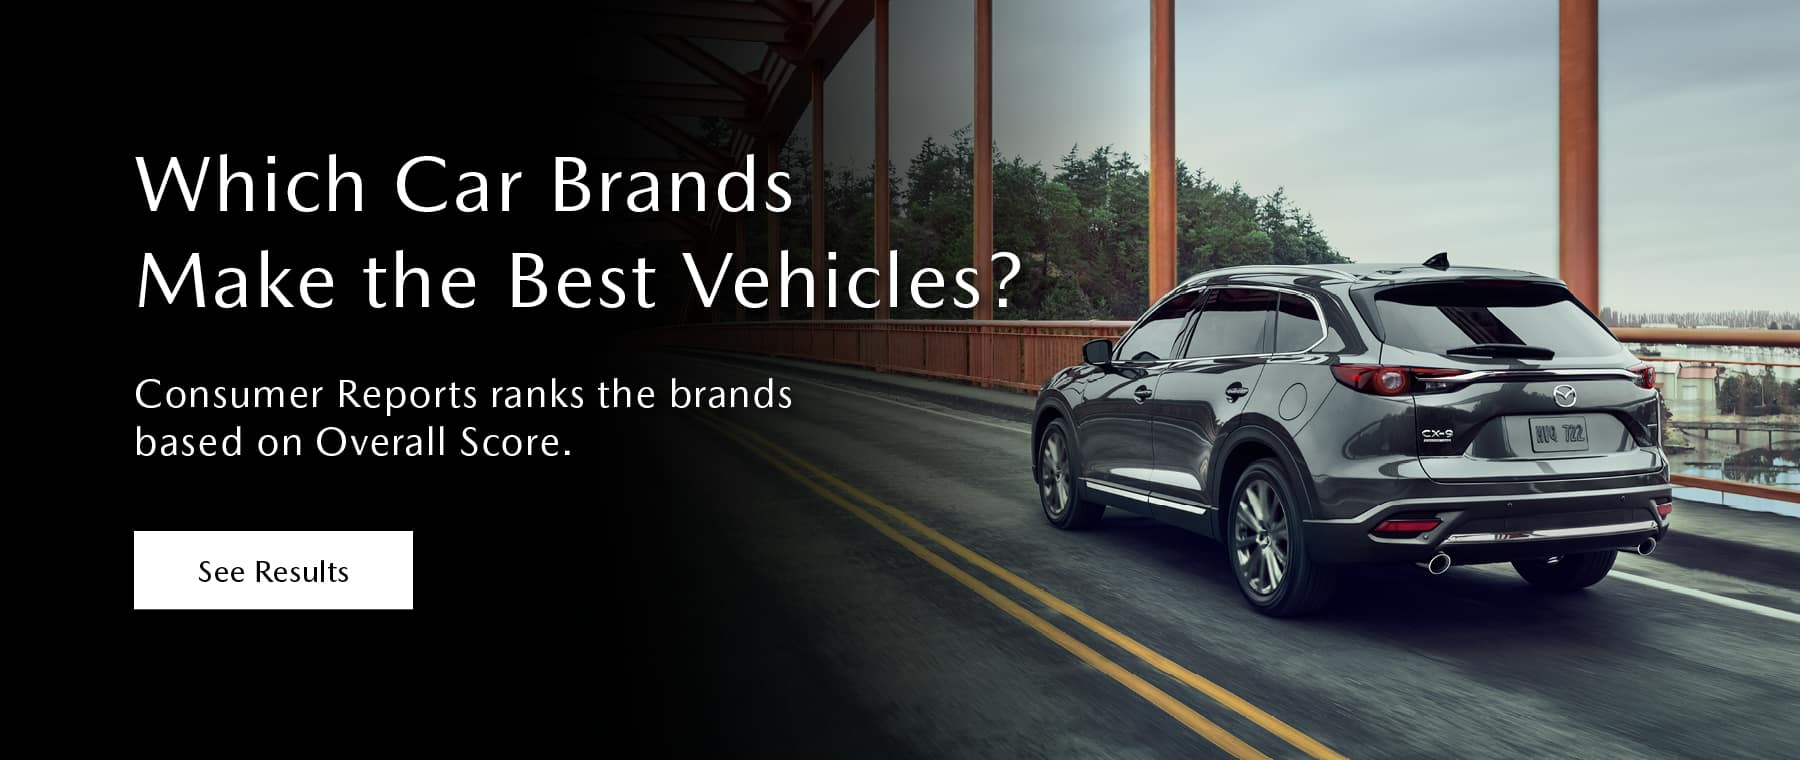 Which Car Brands Make the Best Vehicles? Consumer Reports ranks the brands based on Overall Score. Click or tap to find results.